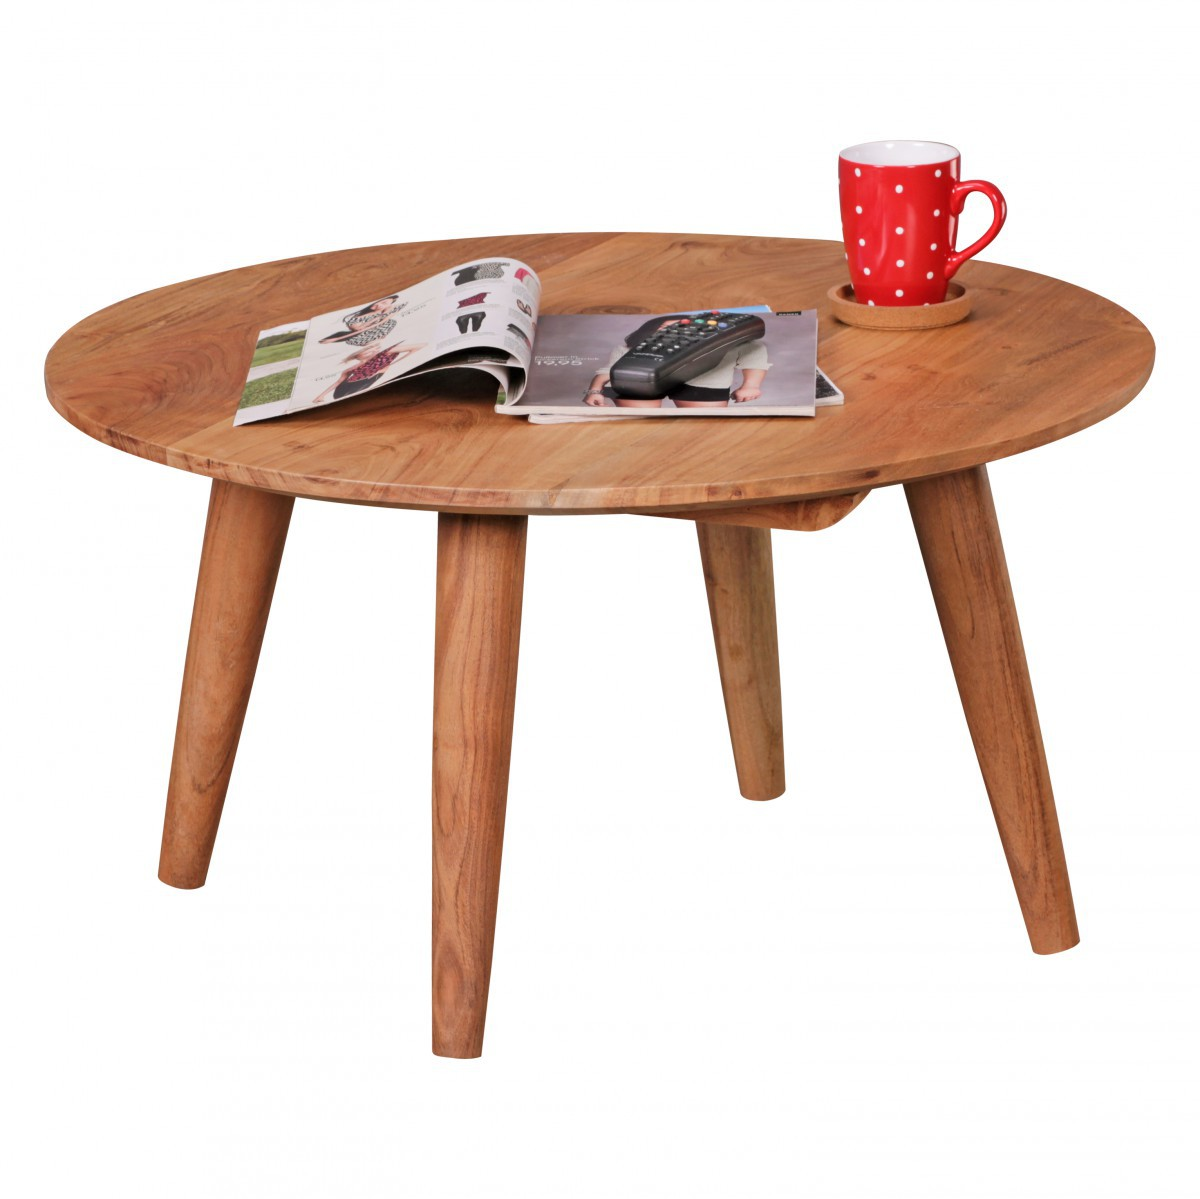 Finebuy table basse en bois massif acacia table basse ronde 75 x 40 cm ferme - Table basse ronde noir ...